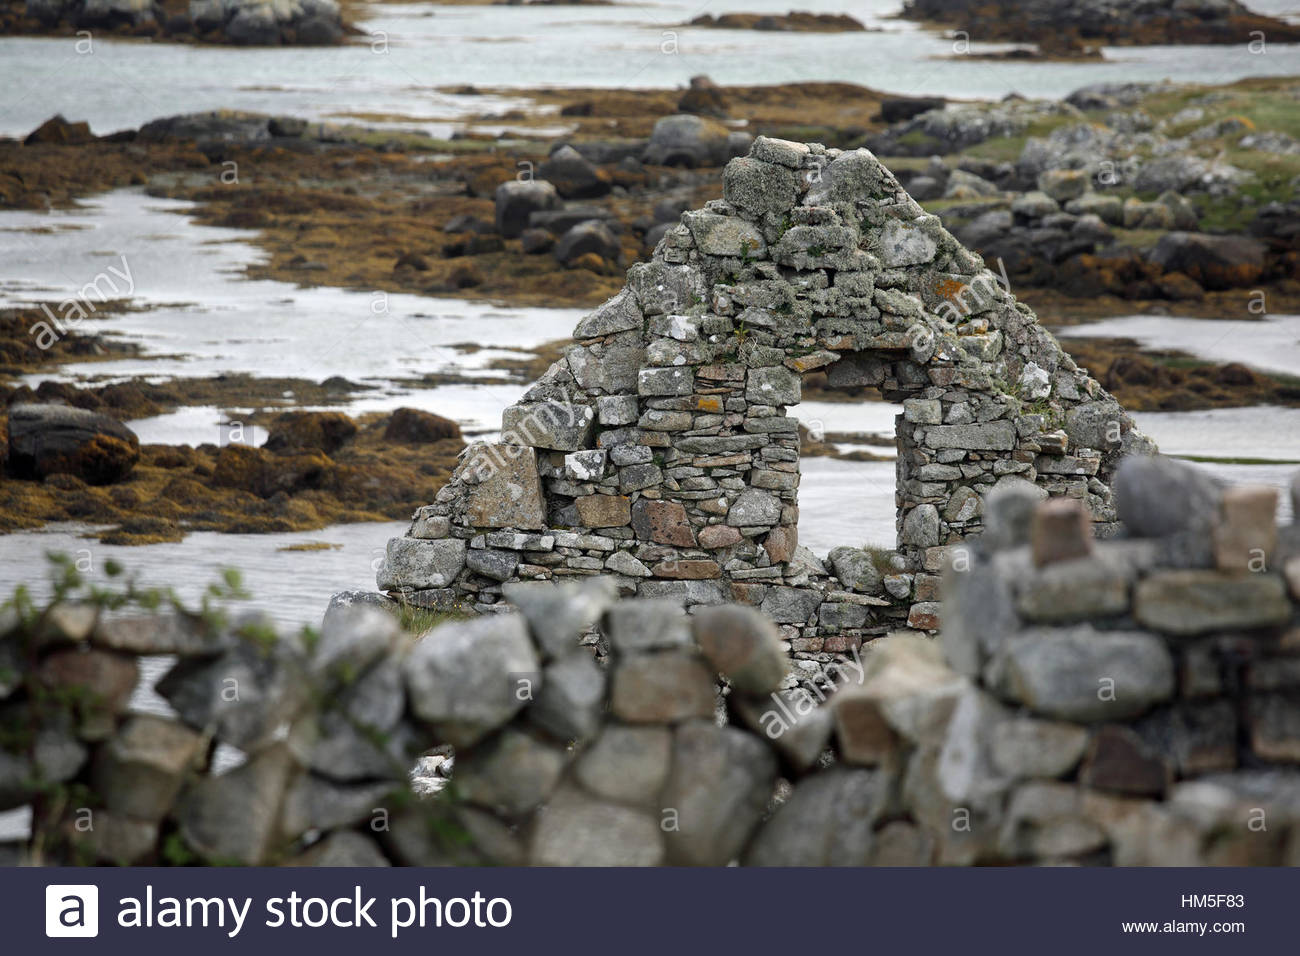 Irish house in ruins made of stone and stone walls by the sea in Galway, Ireland - Stock Image